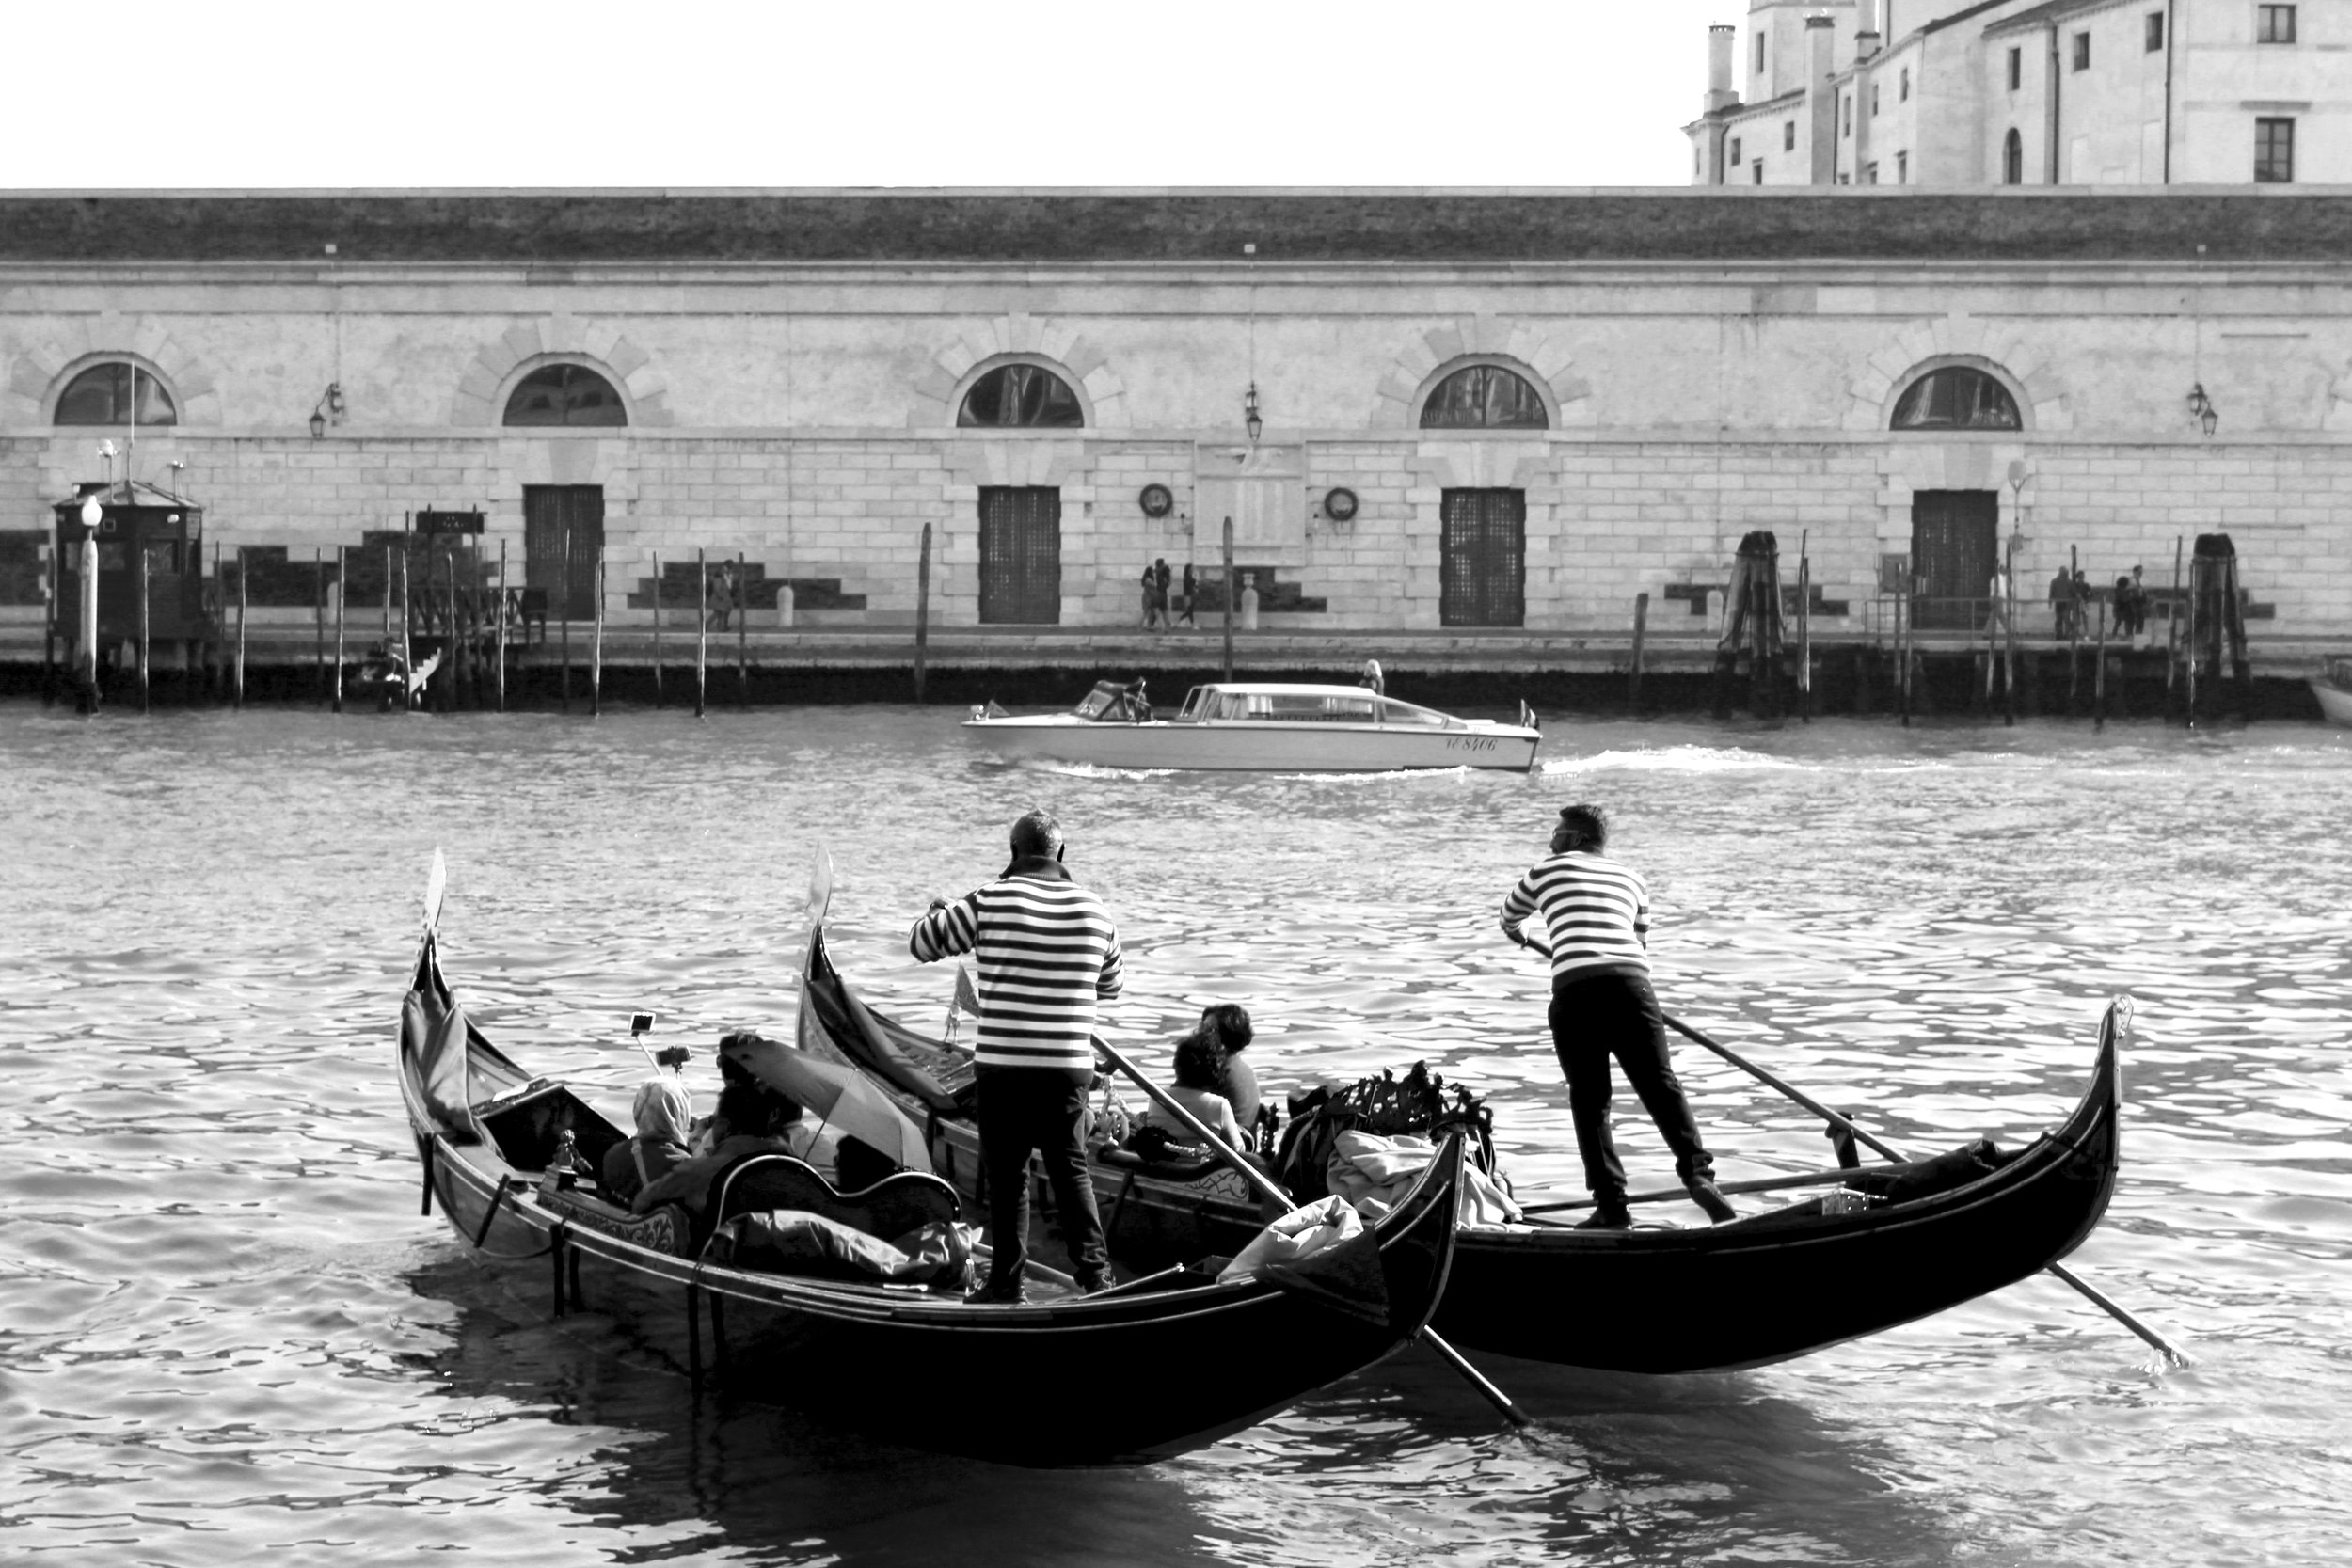 Photojournal: from Venice with LoVe